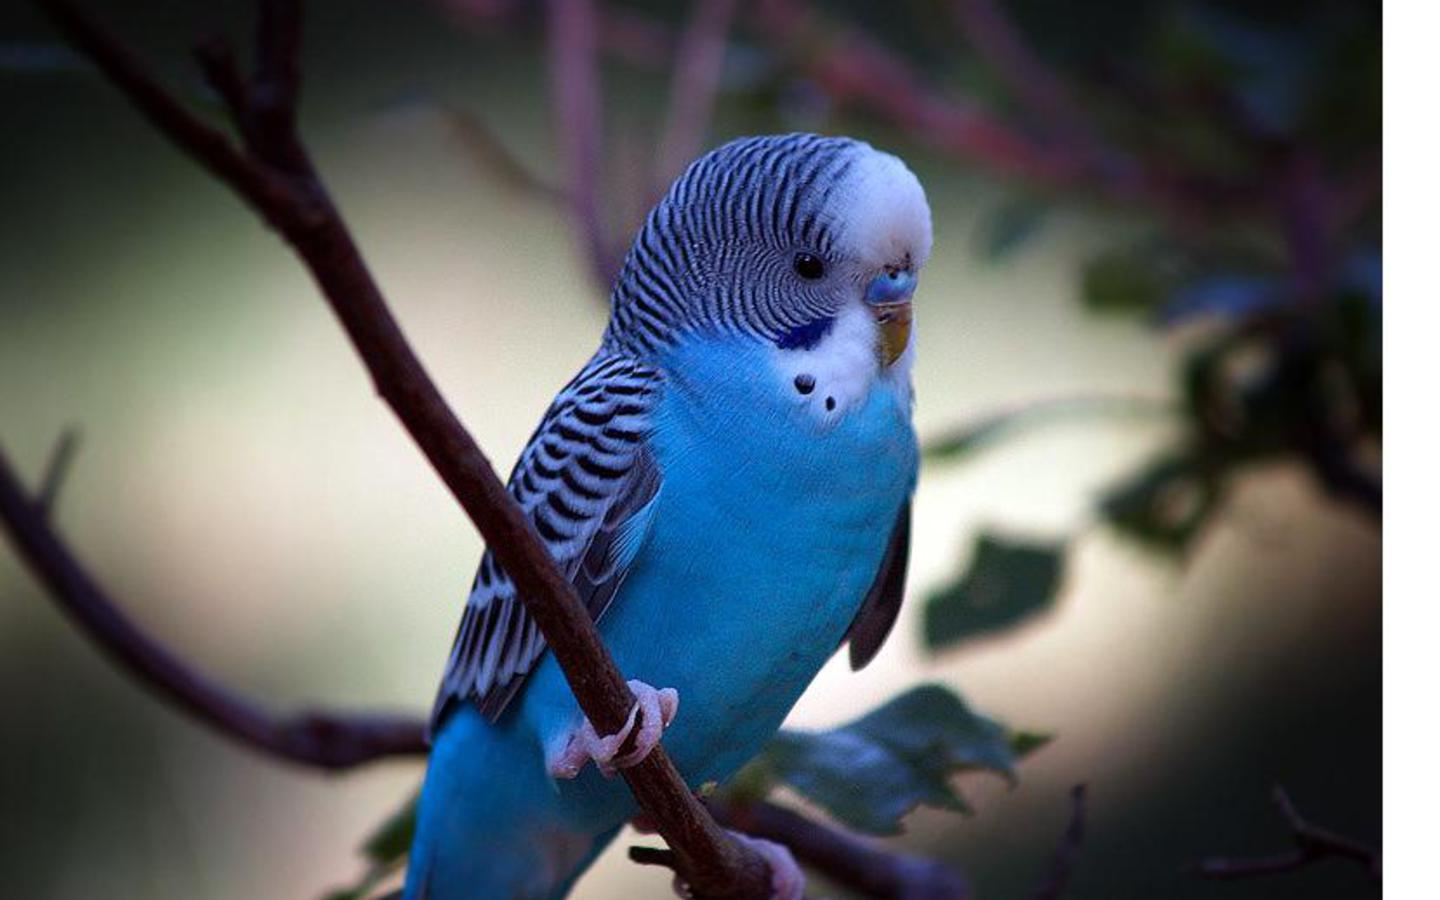 Parrot Wallpapers  Pets Cute and Docile 1440x900